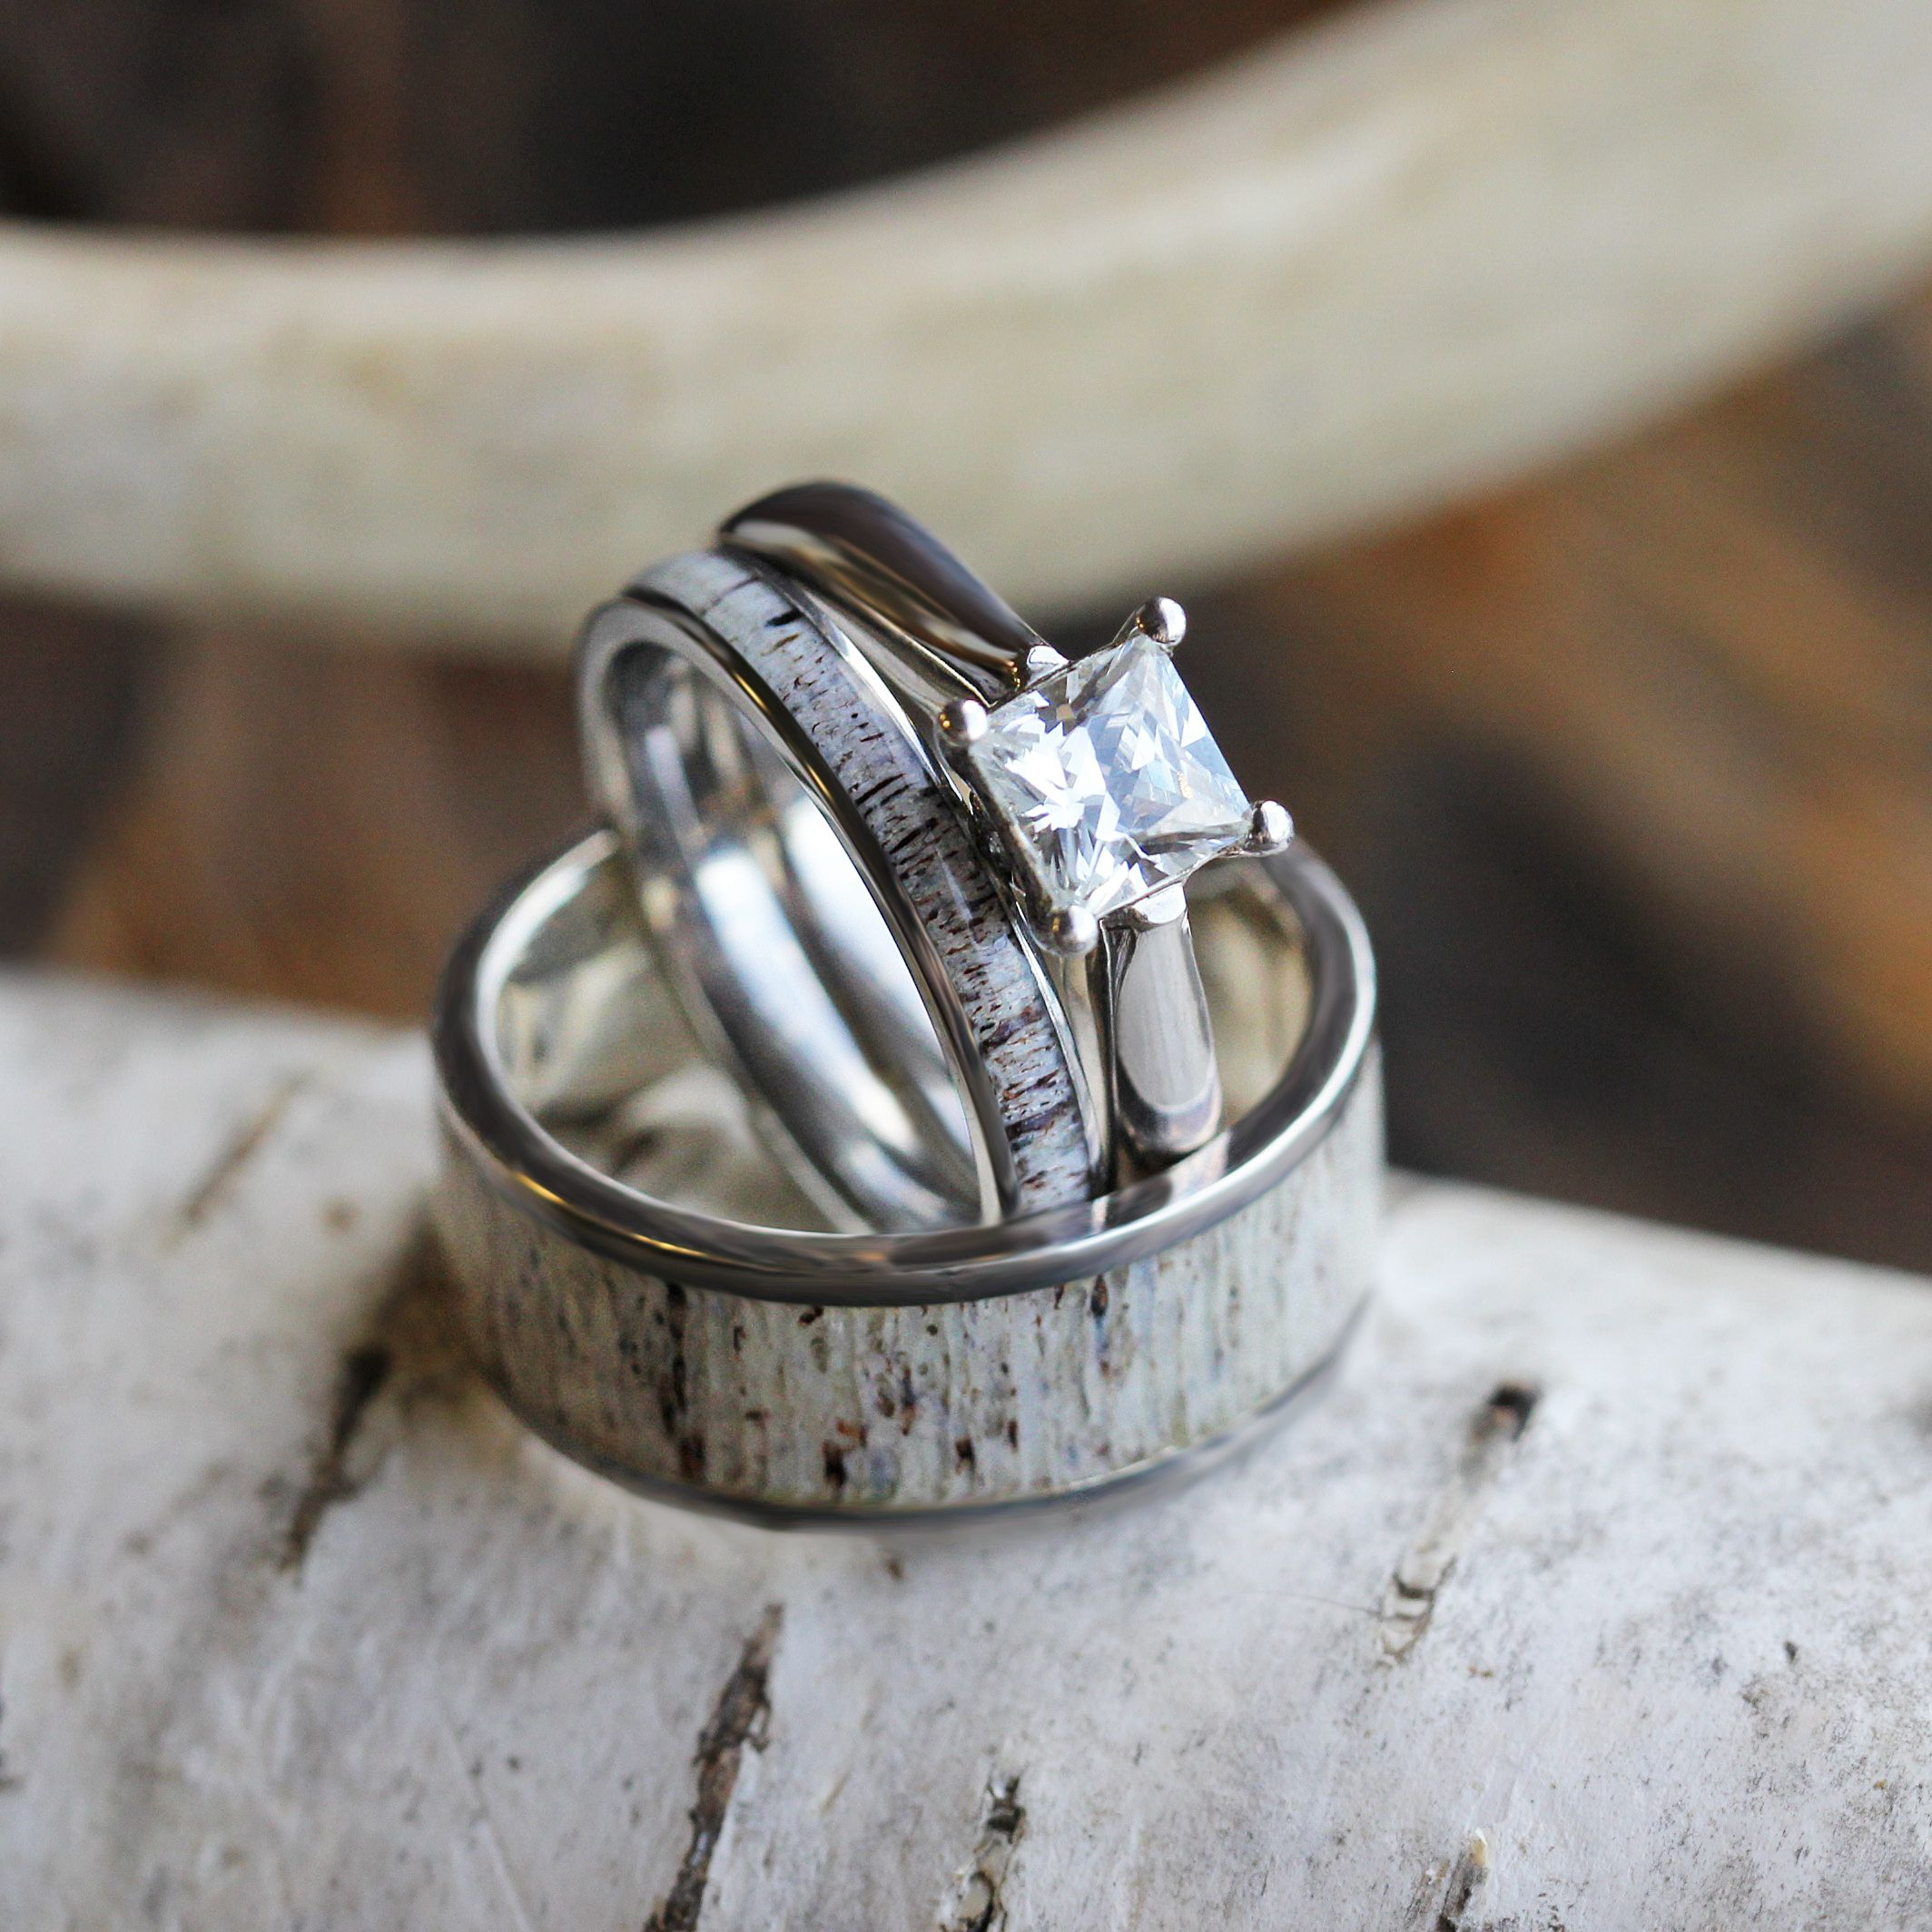 elk antler davidson harley idea rings ring diamond lovely unique wedding